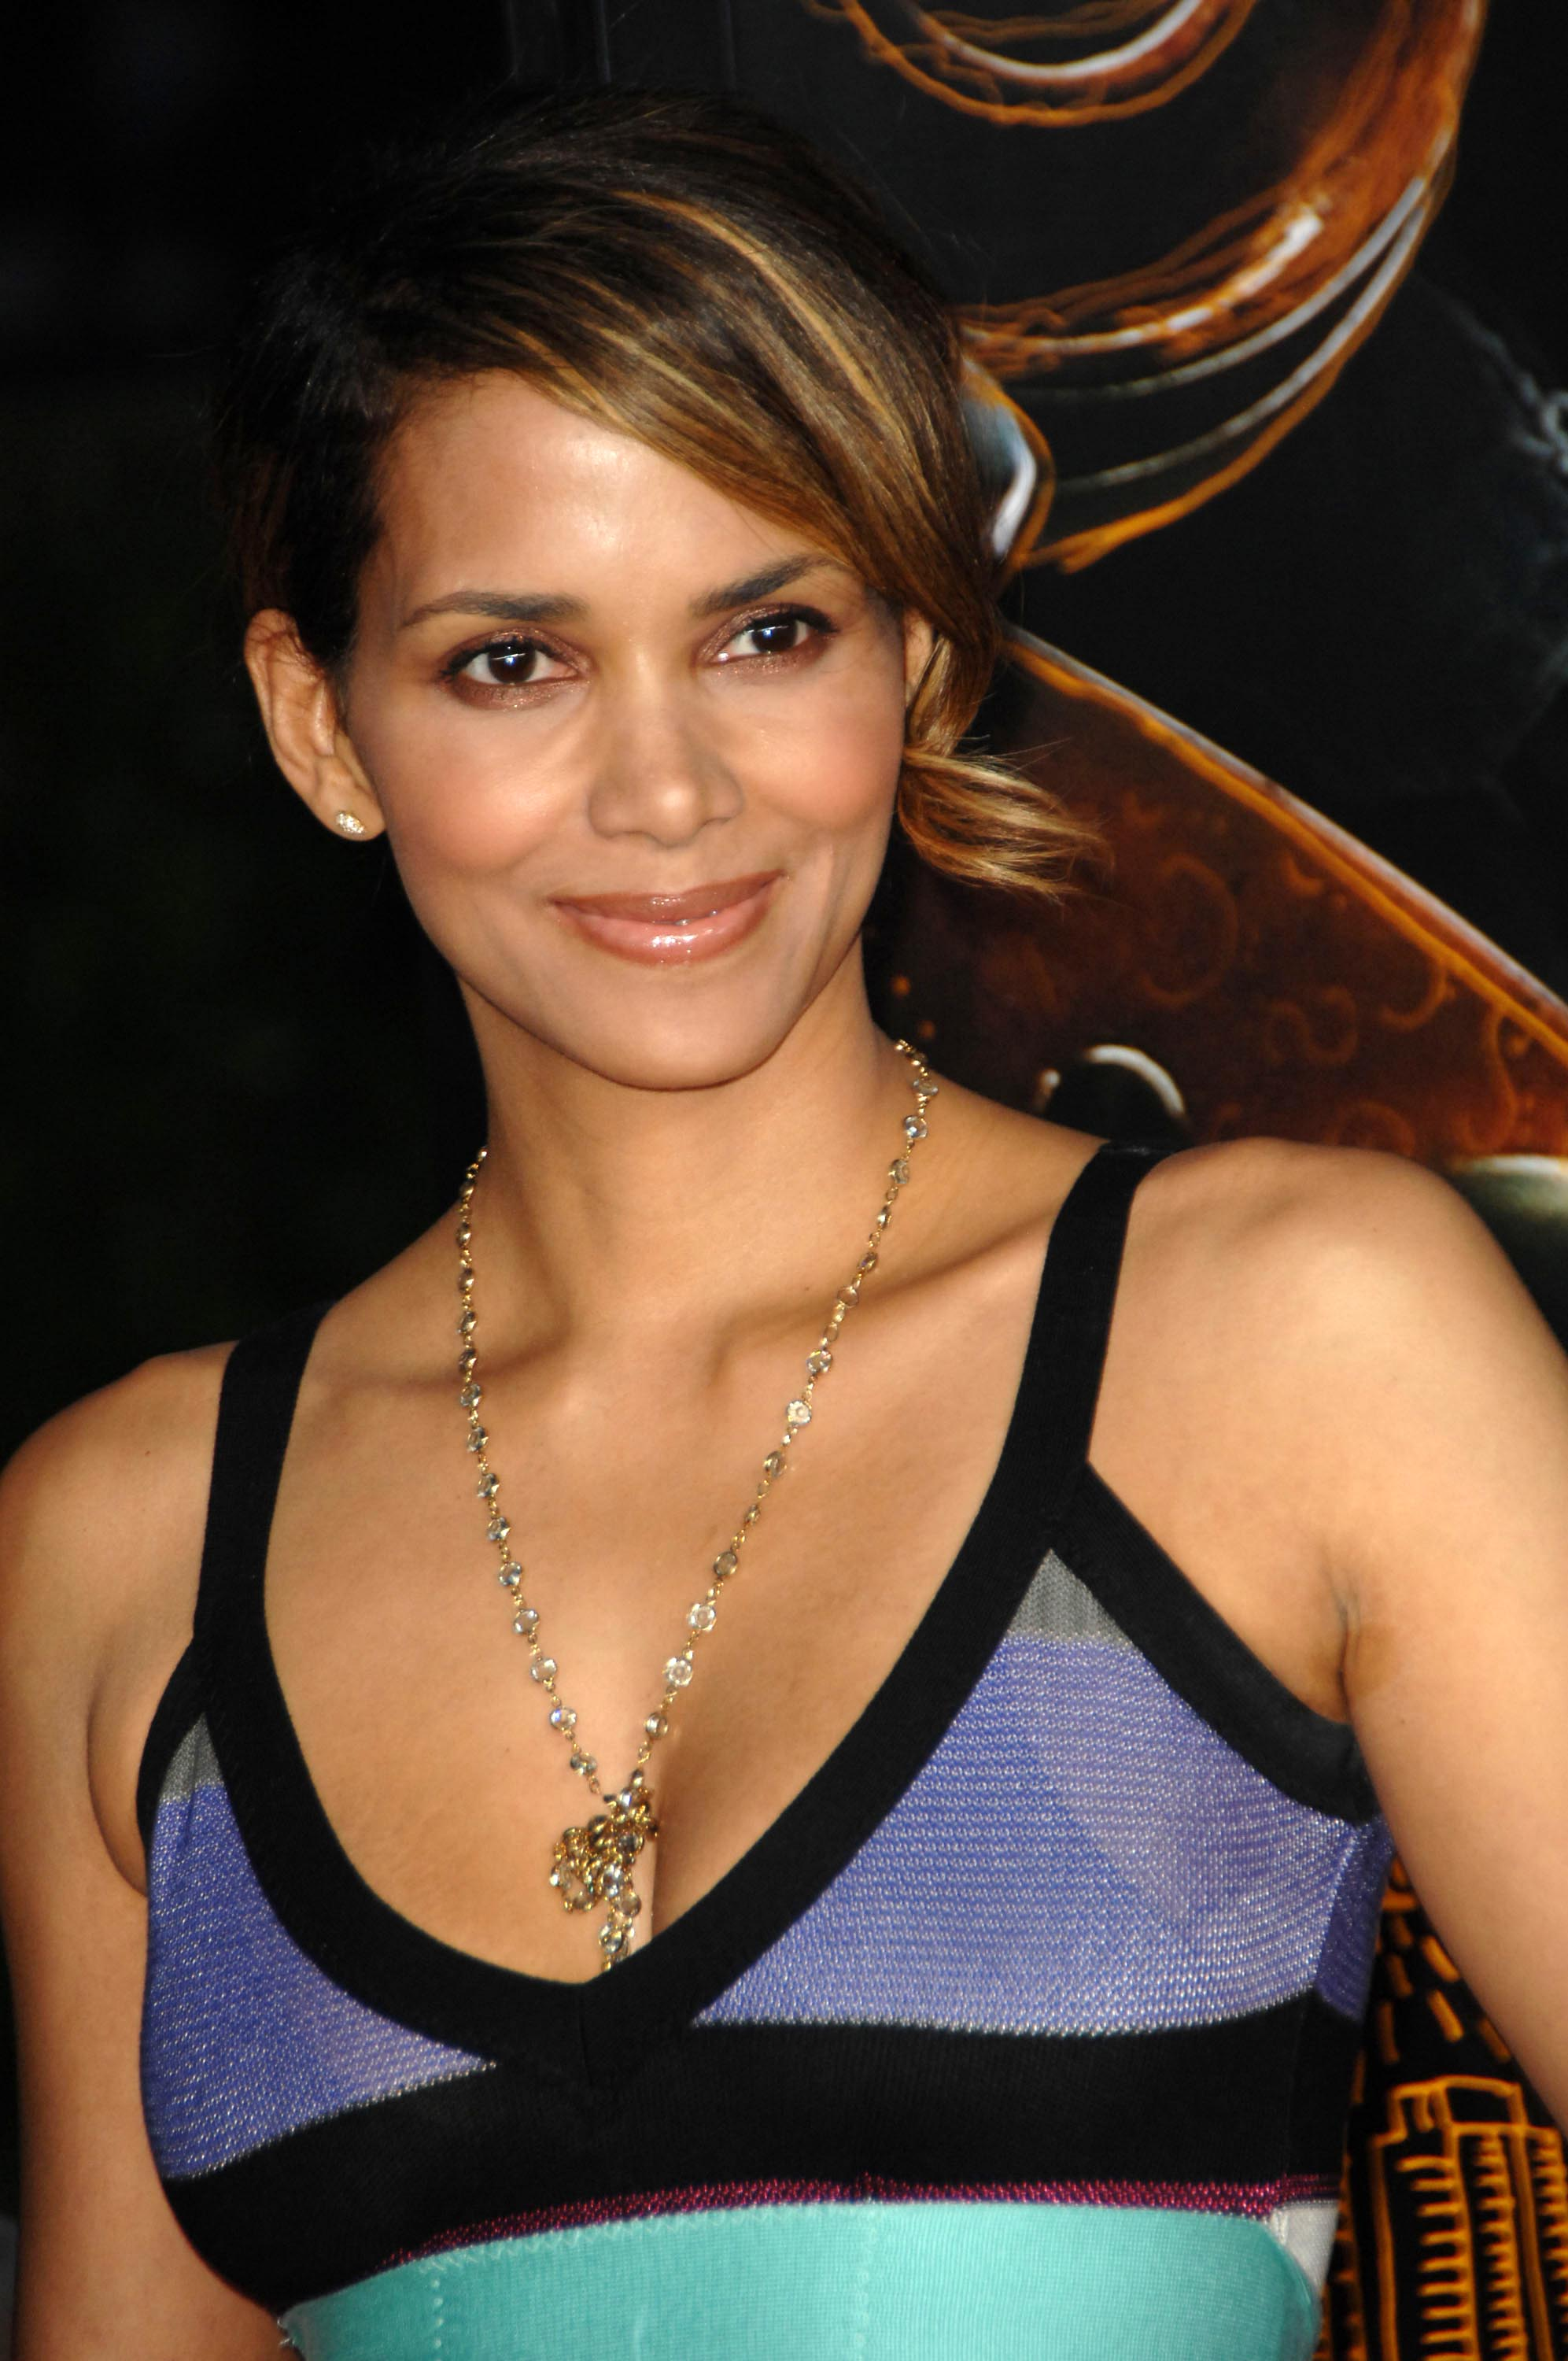 69671_Halle_Berry_The_Soloist_premiere_in_Los_Angeles_91_122_1023lo.jpg